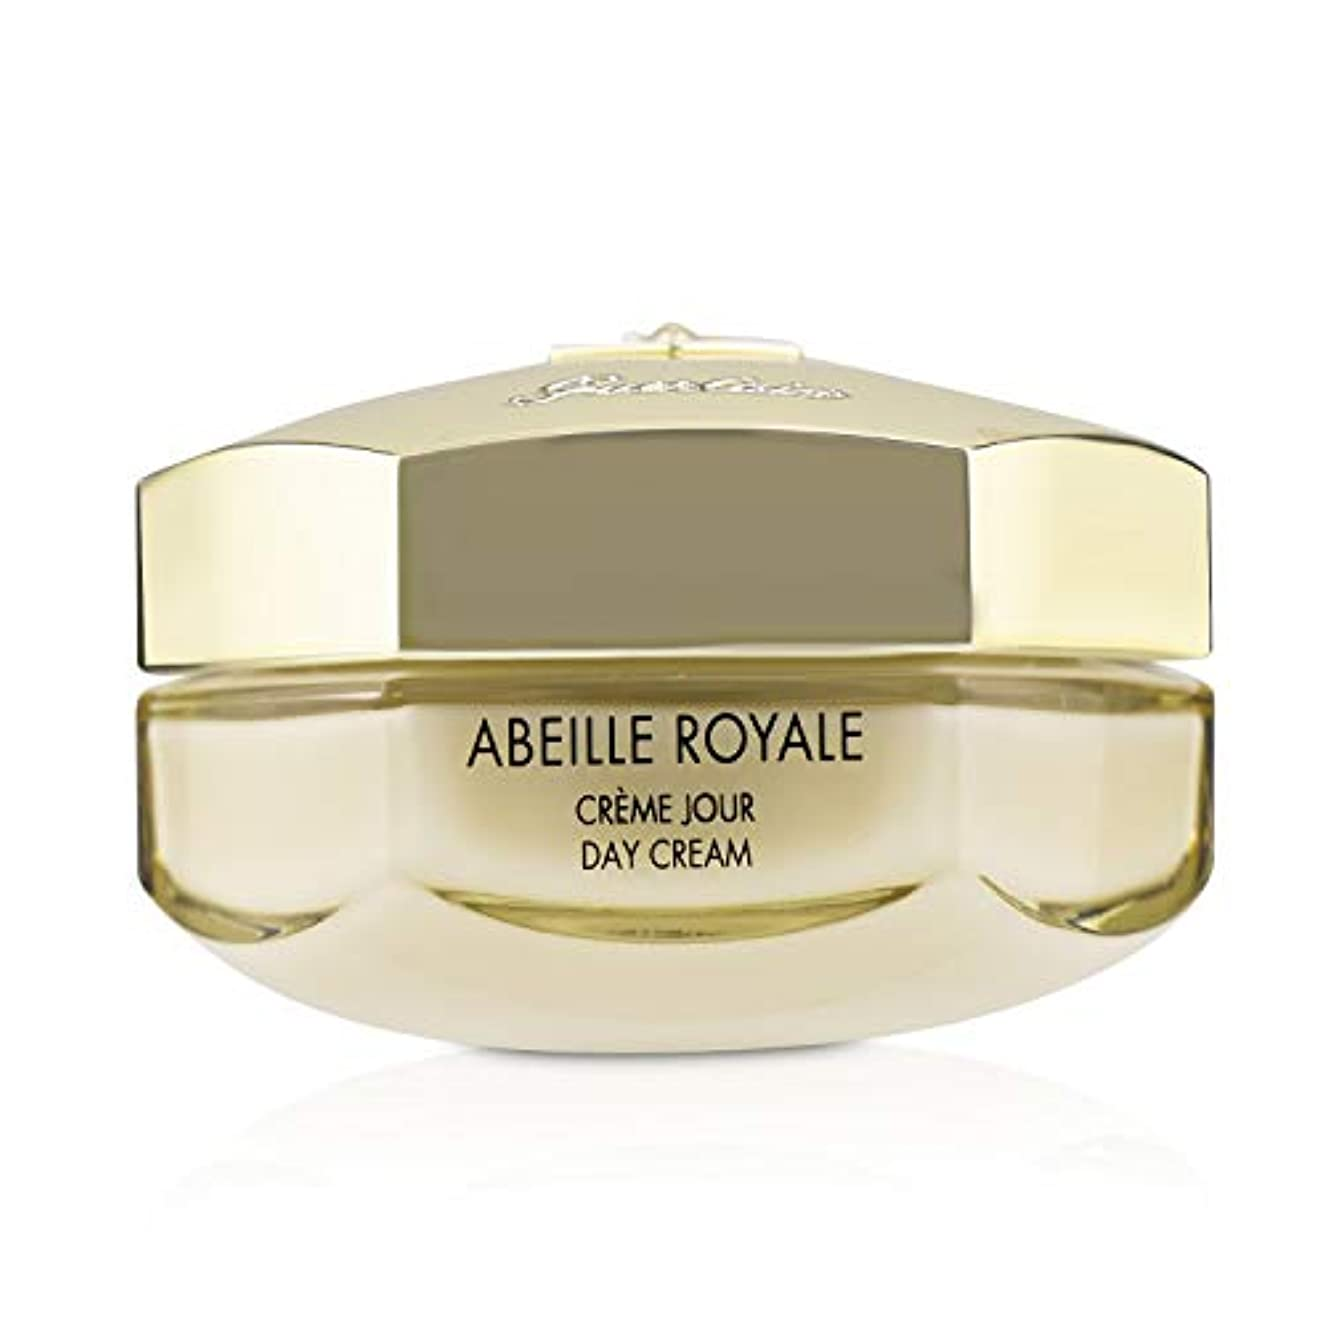 淡い破裂移住するゲラン Abeille Royale Day Cream - Firms, Smoothes & Illuminates 50ml/1.6oz並行輸入品